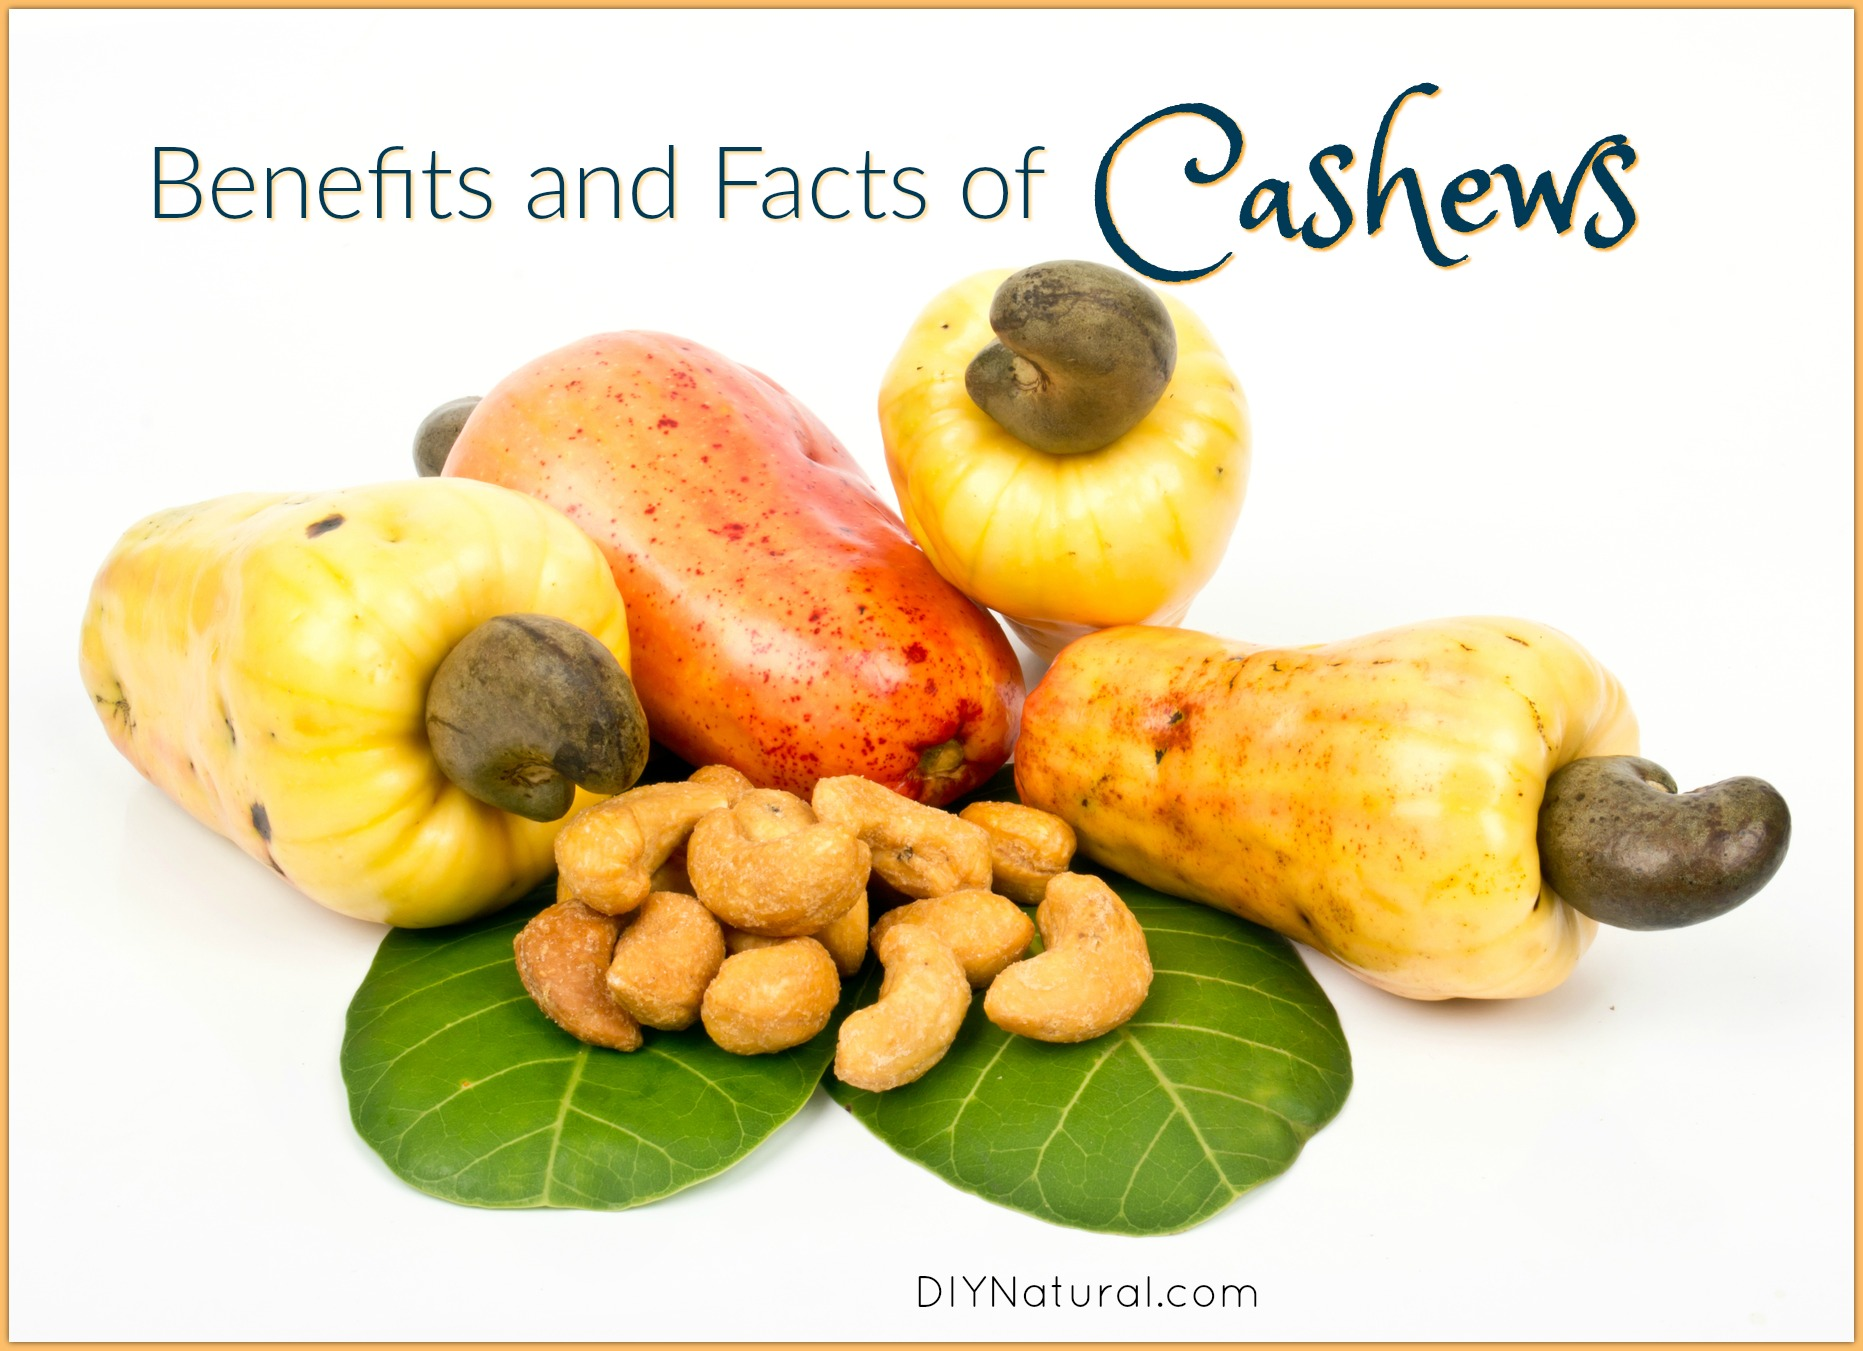 Benefits of Cashews  A Few Interesting Facts About Cashews